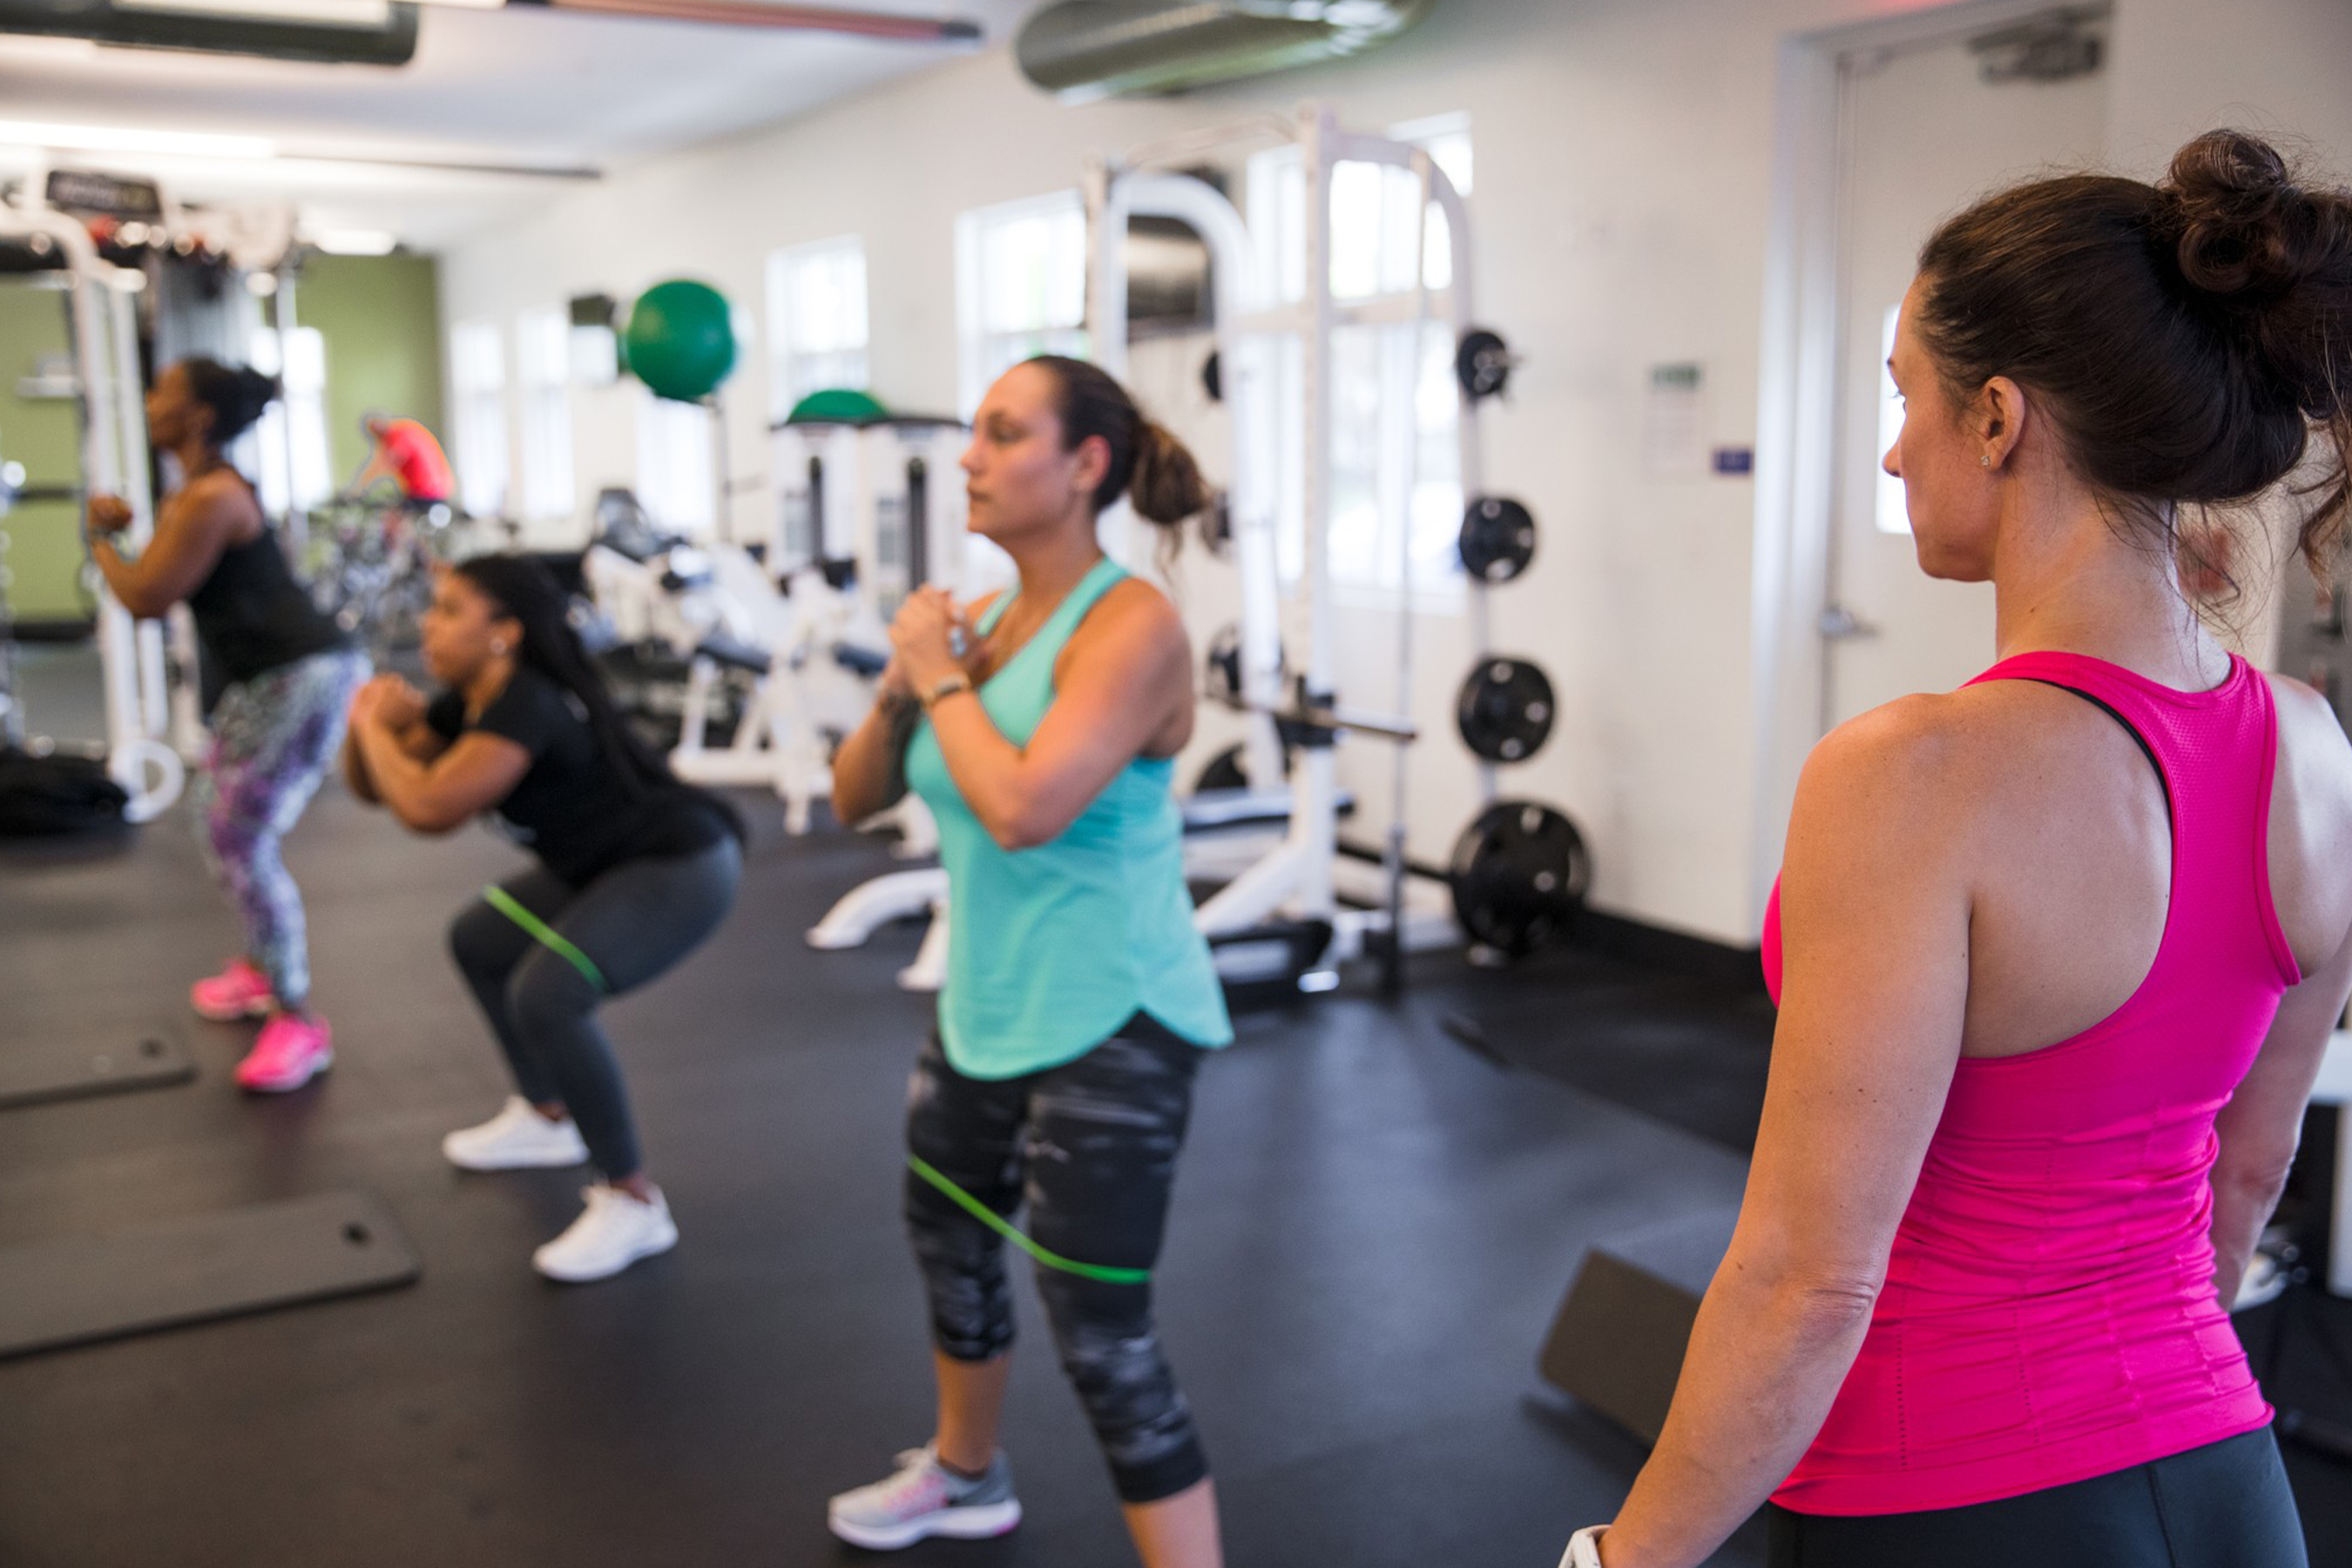 Bankers Healthcare Group, ranked No. 12 Best Workplace for Millennials by Fortune, offers on-site gyms to help employees stay healthy.